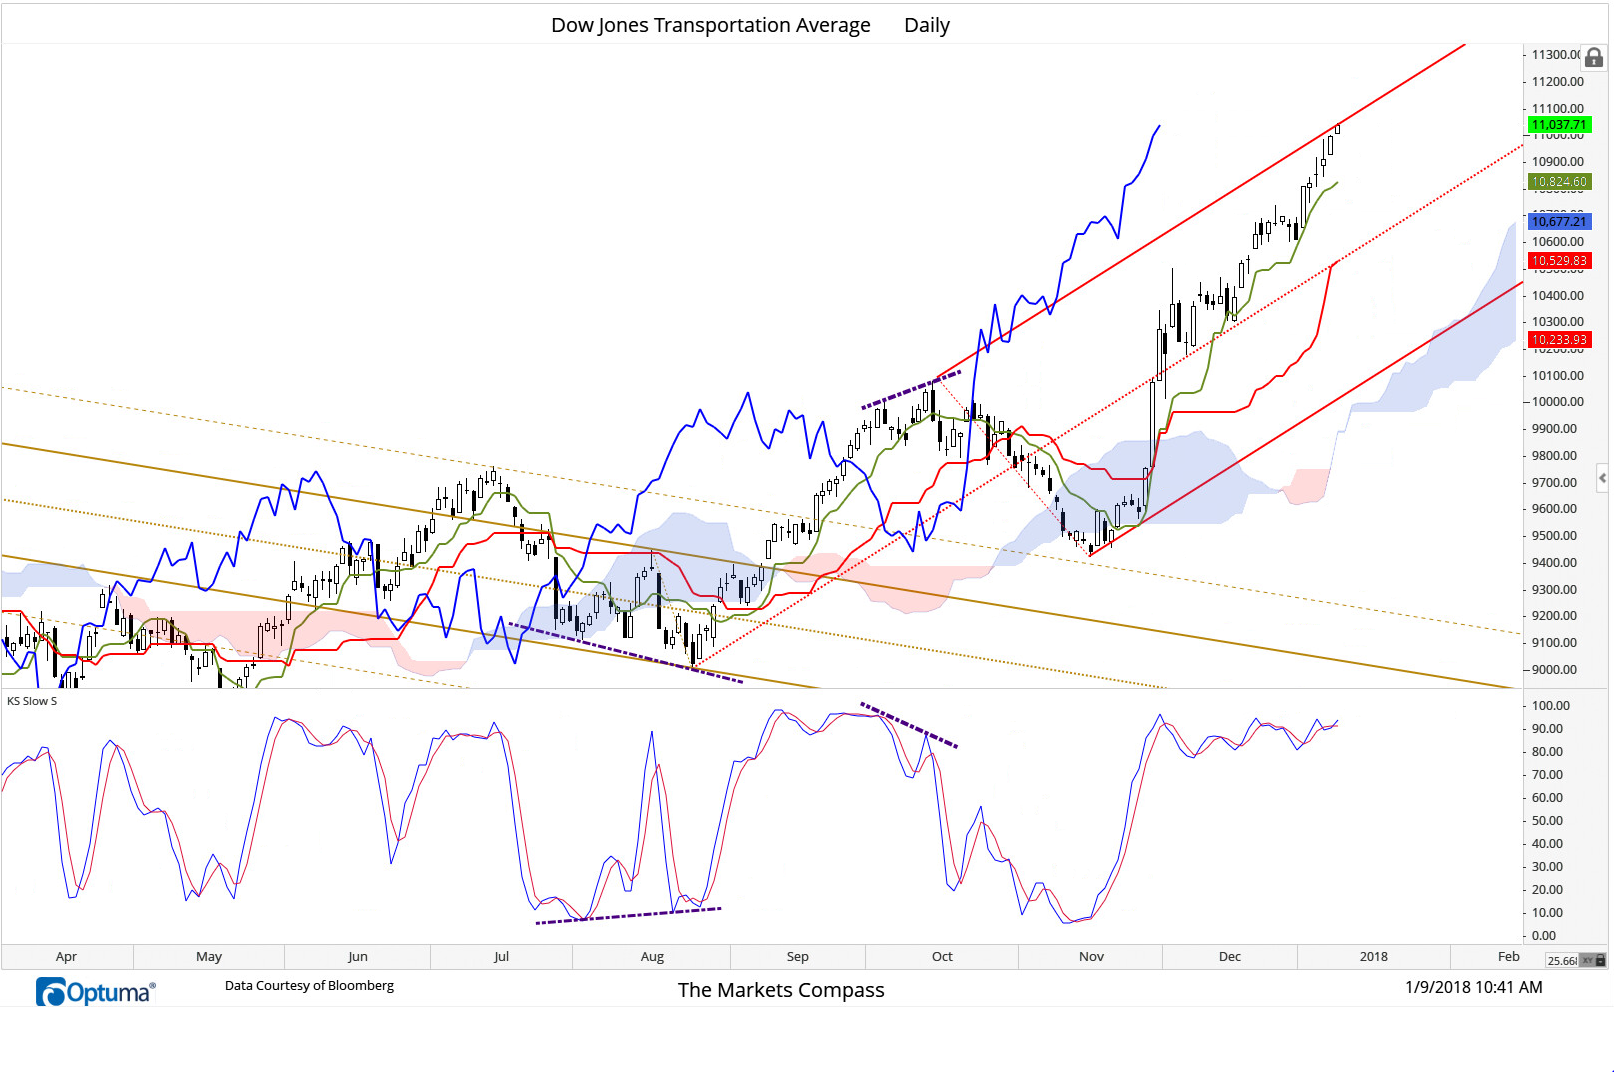 January 9, 2018 -  The Dow Jones Transportation Average is pressing up against the Upper Parallel of the Standard Pitchfork (red) which may offer a measure of resistance considering the position of the Slow Stochastic. That said the Index has been able to advance +9.5% since the oscillator first reached overbought territory in late November. All three key cloud lines are rising and are clear of the cloud and of particular technical interest is the support afforded by the Tenken (turning line) which has cradled price since mid- December when the Index left support at the Median Line (red dashed line) behind.